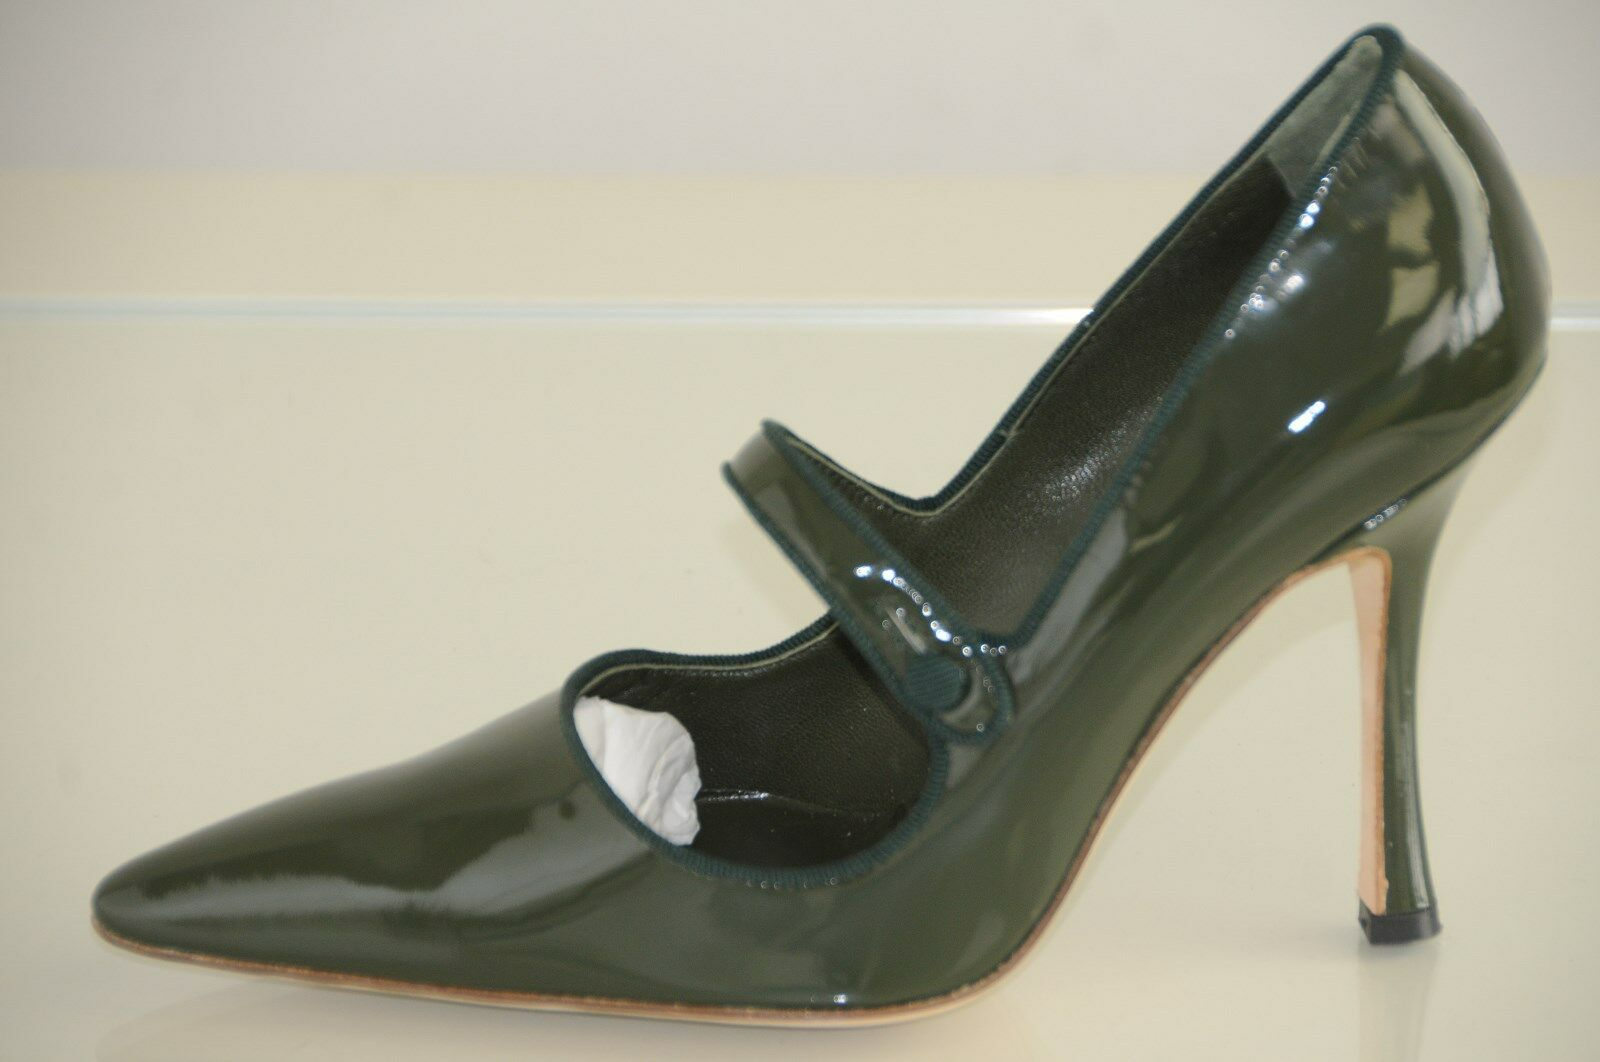 785 NEW MANOLO BLAHNIK  Campari Mary Jane Green Patent  Leather SHOES 37